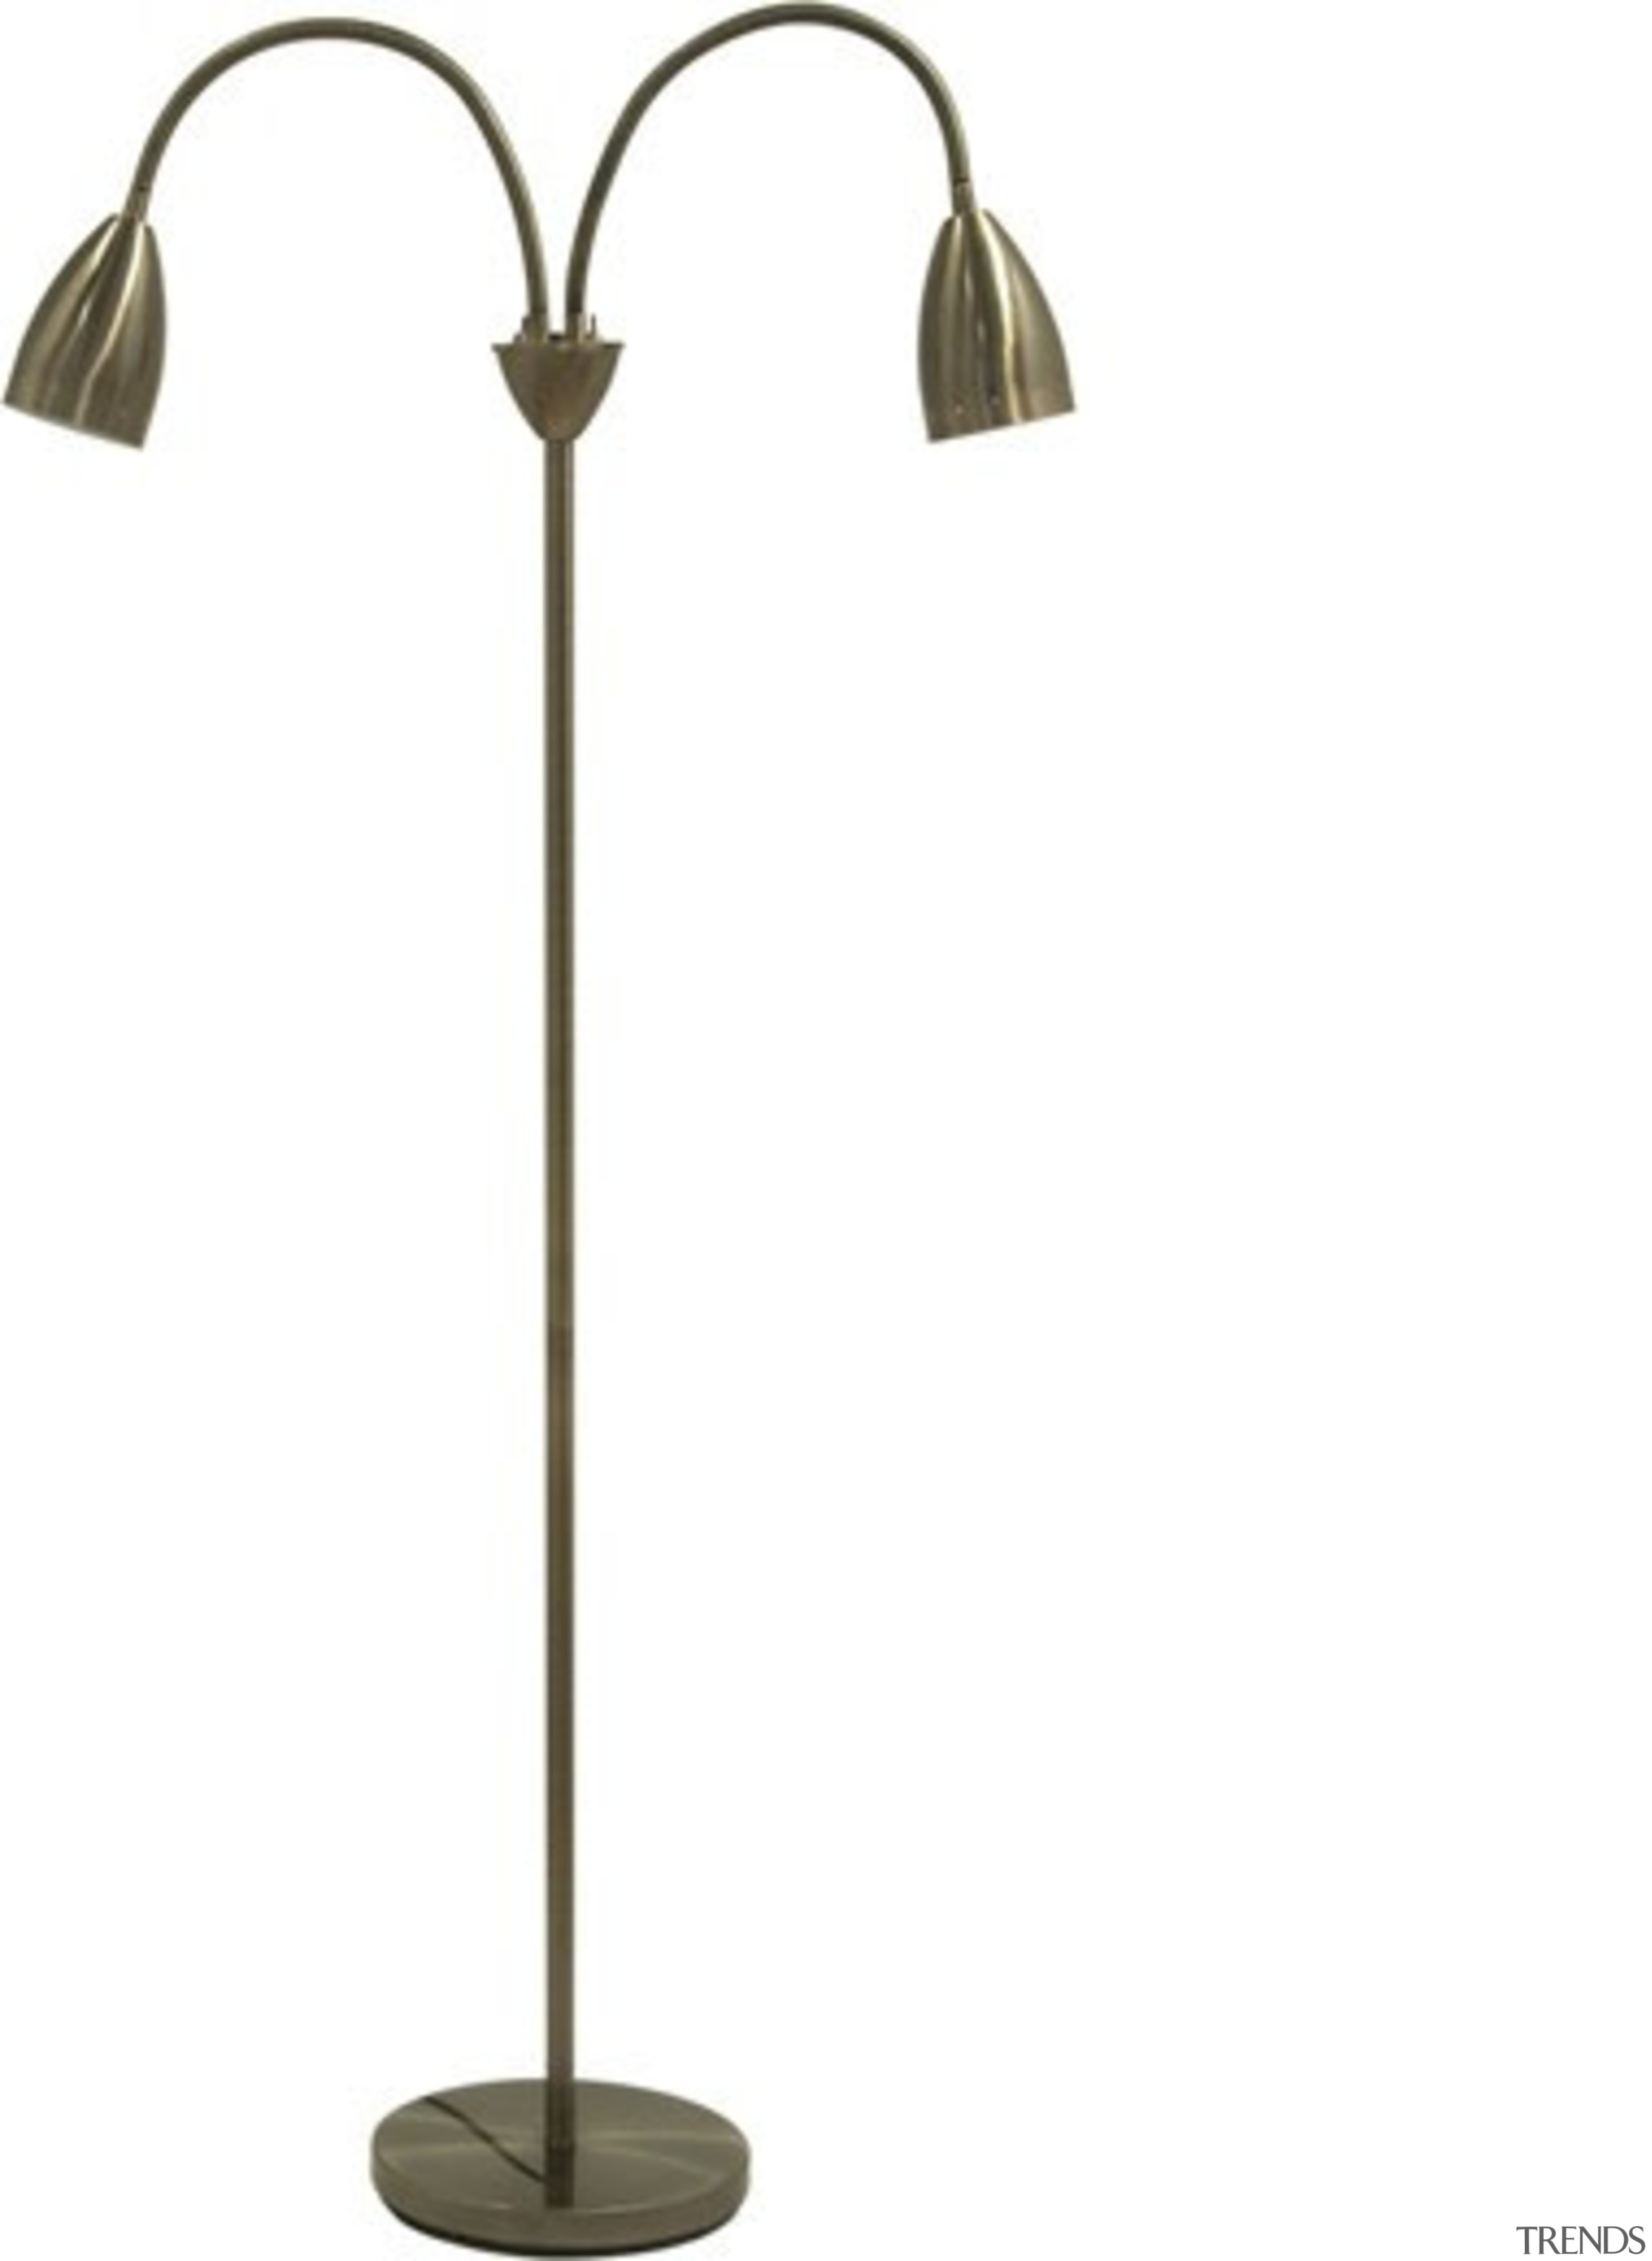 FeaturesA classic style task/reading floor lamp with 2 ceiling fixture, lamp, light fixture, lighting, product design, white